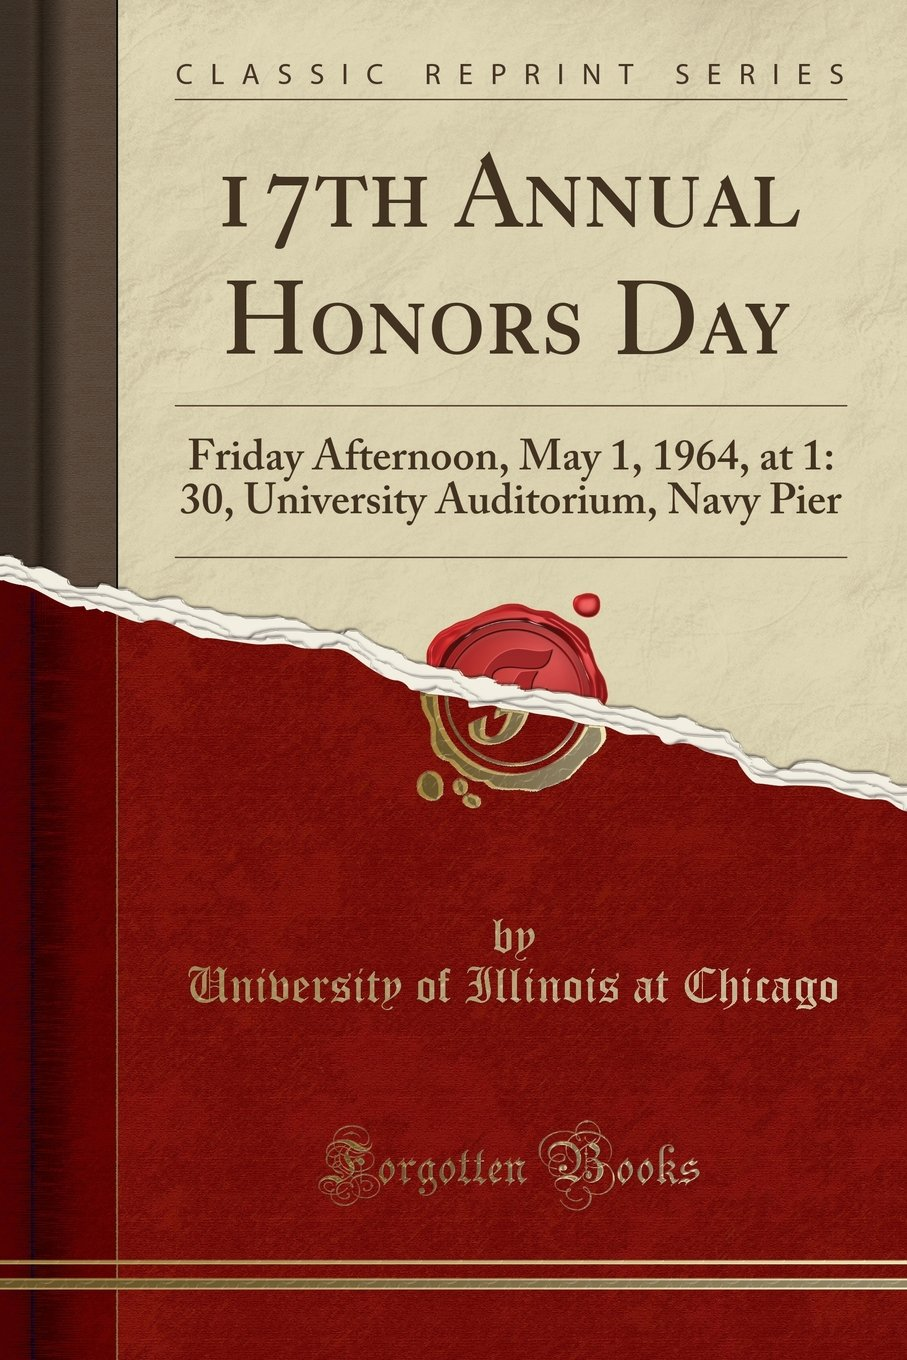 17th Annual Honors Day: Friday Afternoon, May 1, 1964, at 1: 30, University Auditorium, Navy Pier (Classic Reprint) pdf